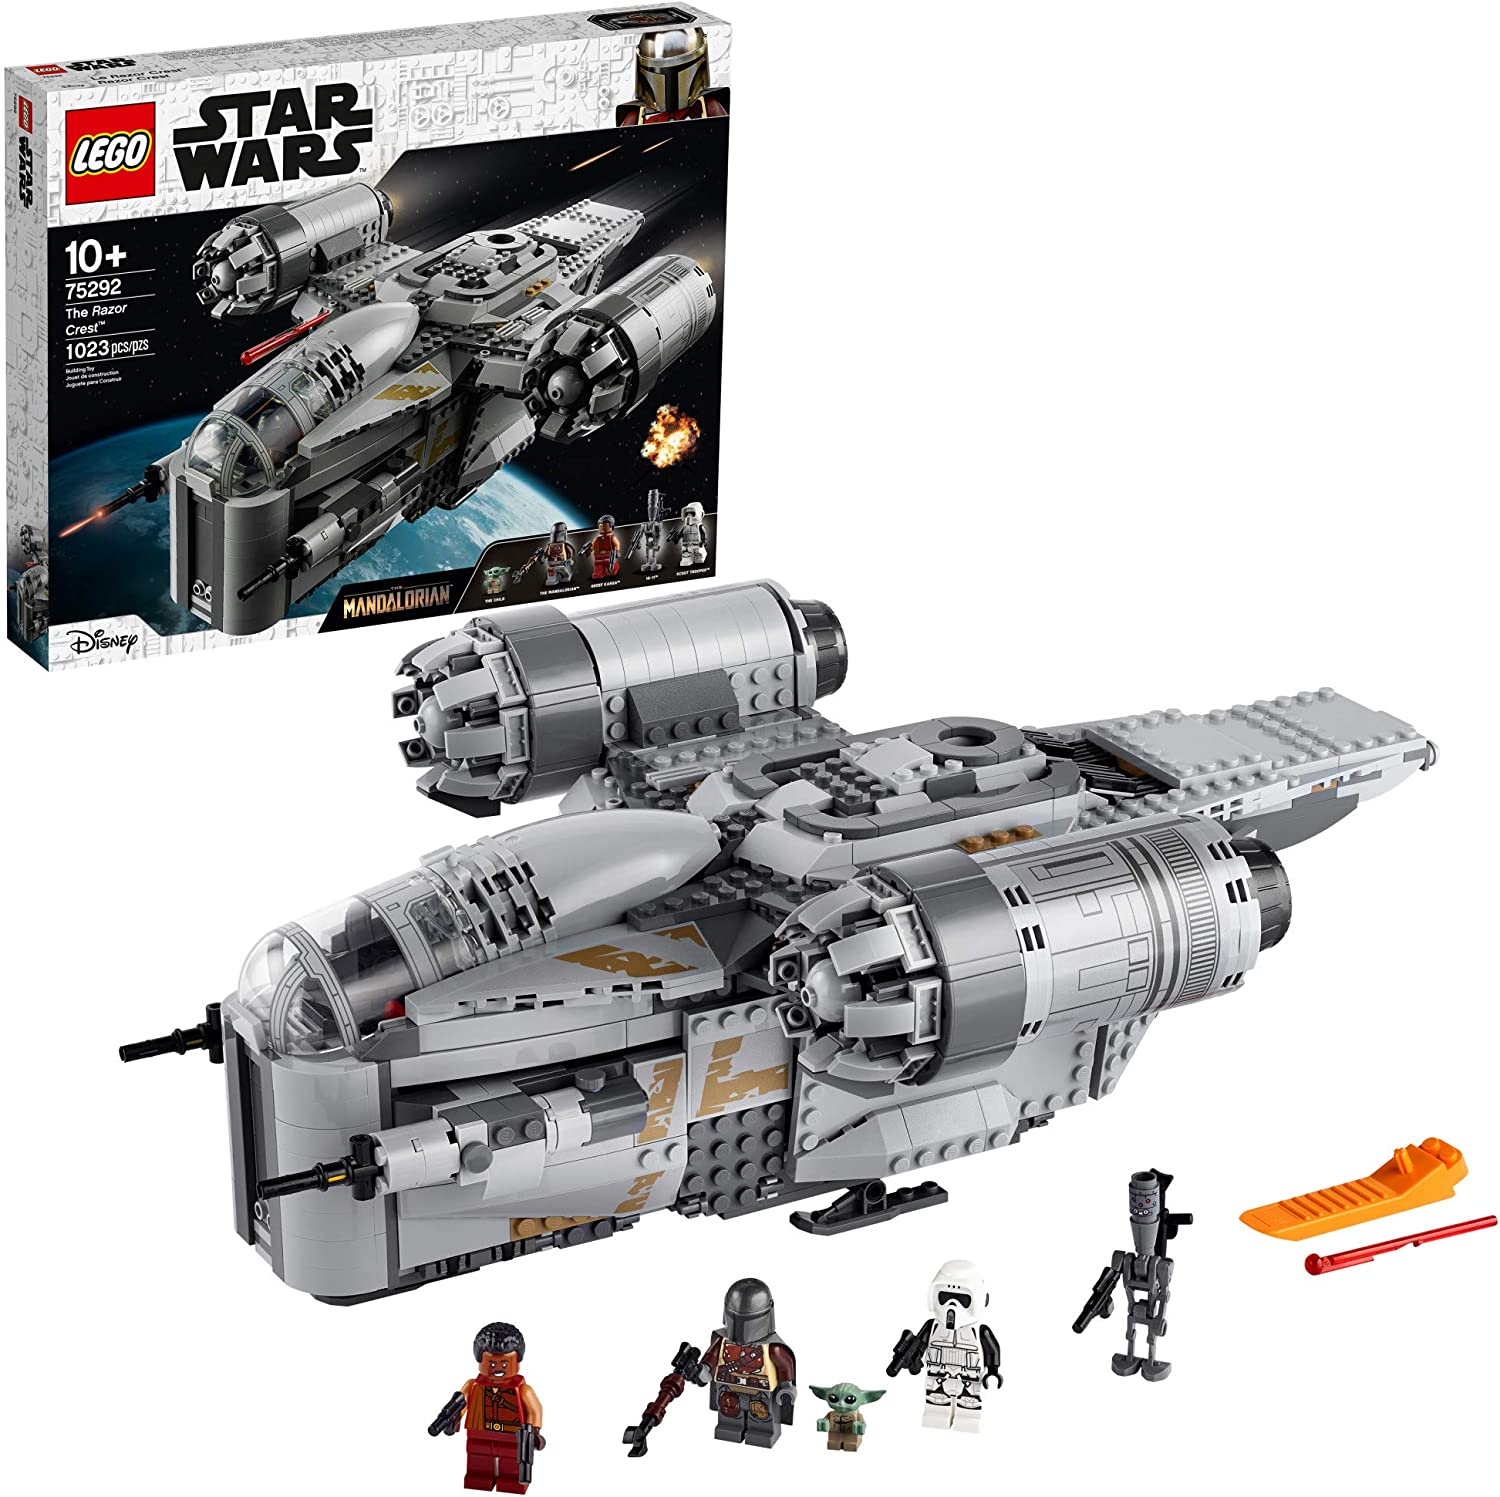 LEGO Star Wars: The Mandalorian The Razor Crest 75292 Building Kit, New 2020 (1,023 Pieces): Toys & Games